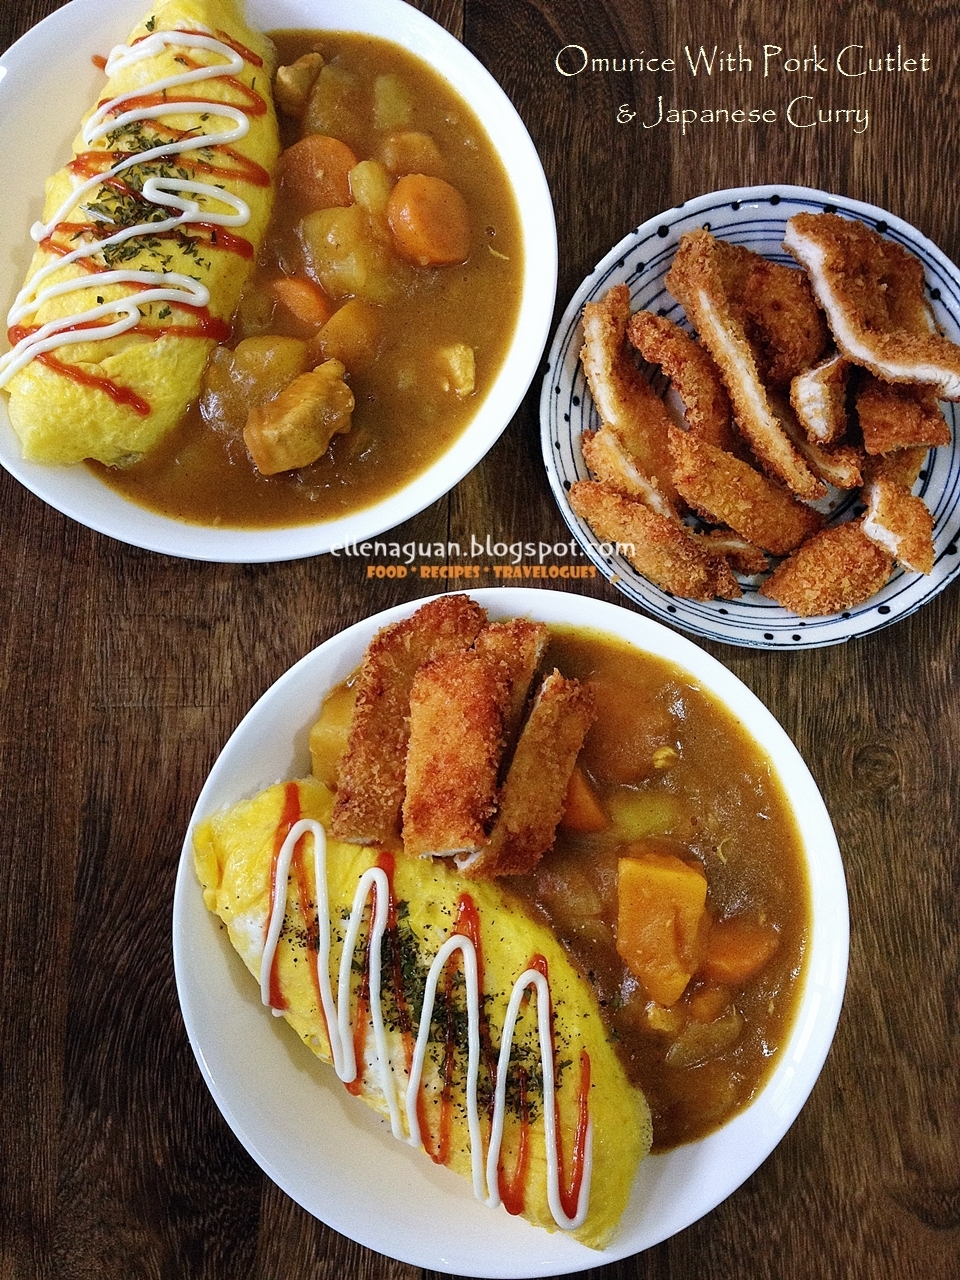 Omurice and Pork Cutlet With Japanese Curry